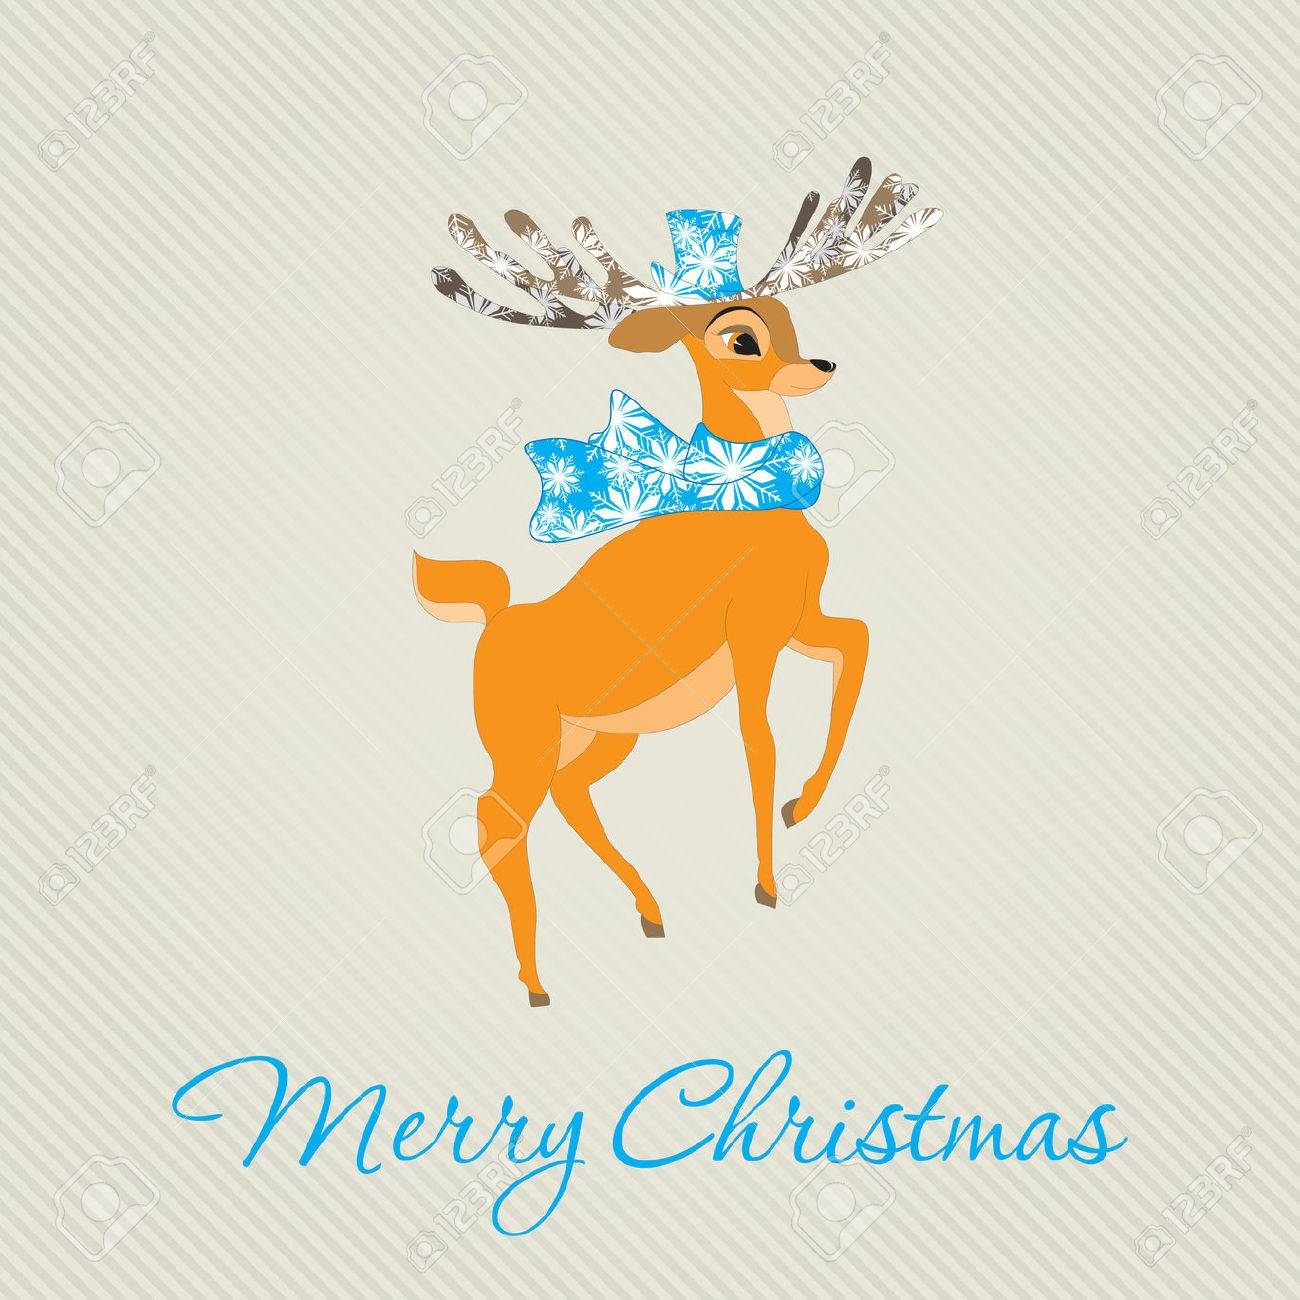 Merry Christmas Greeting Card with deer. Vector illustration.  Holiday design. Winter. Stock Vector - 22858872